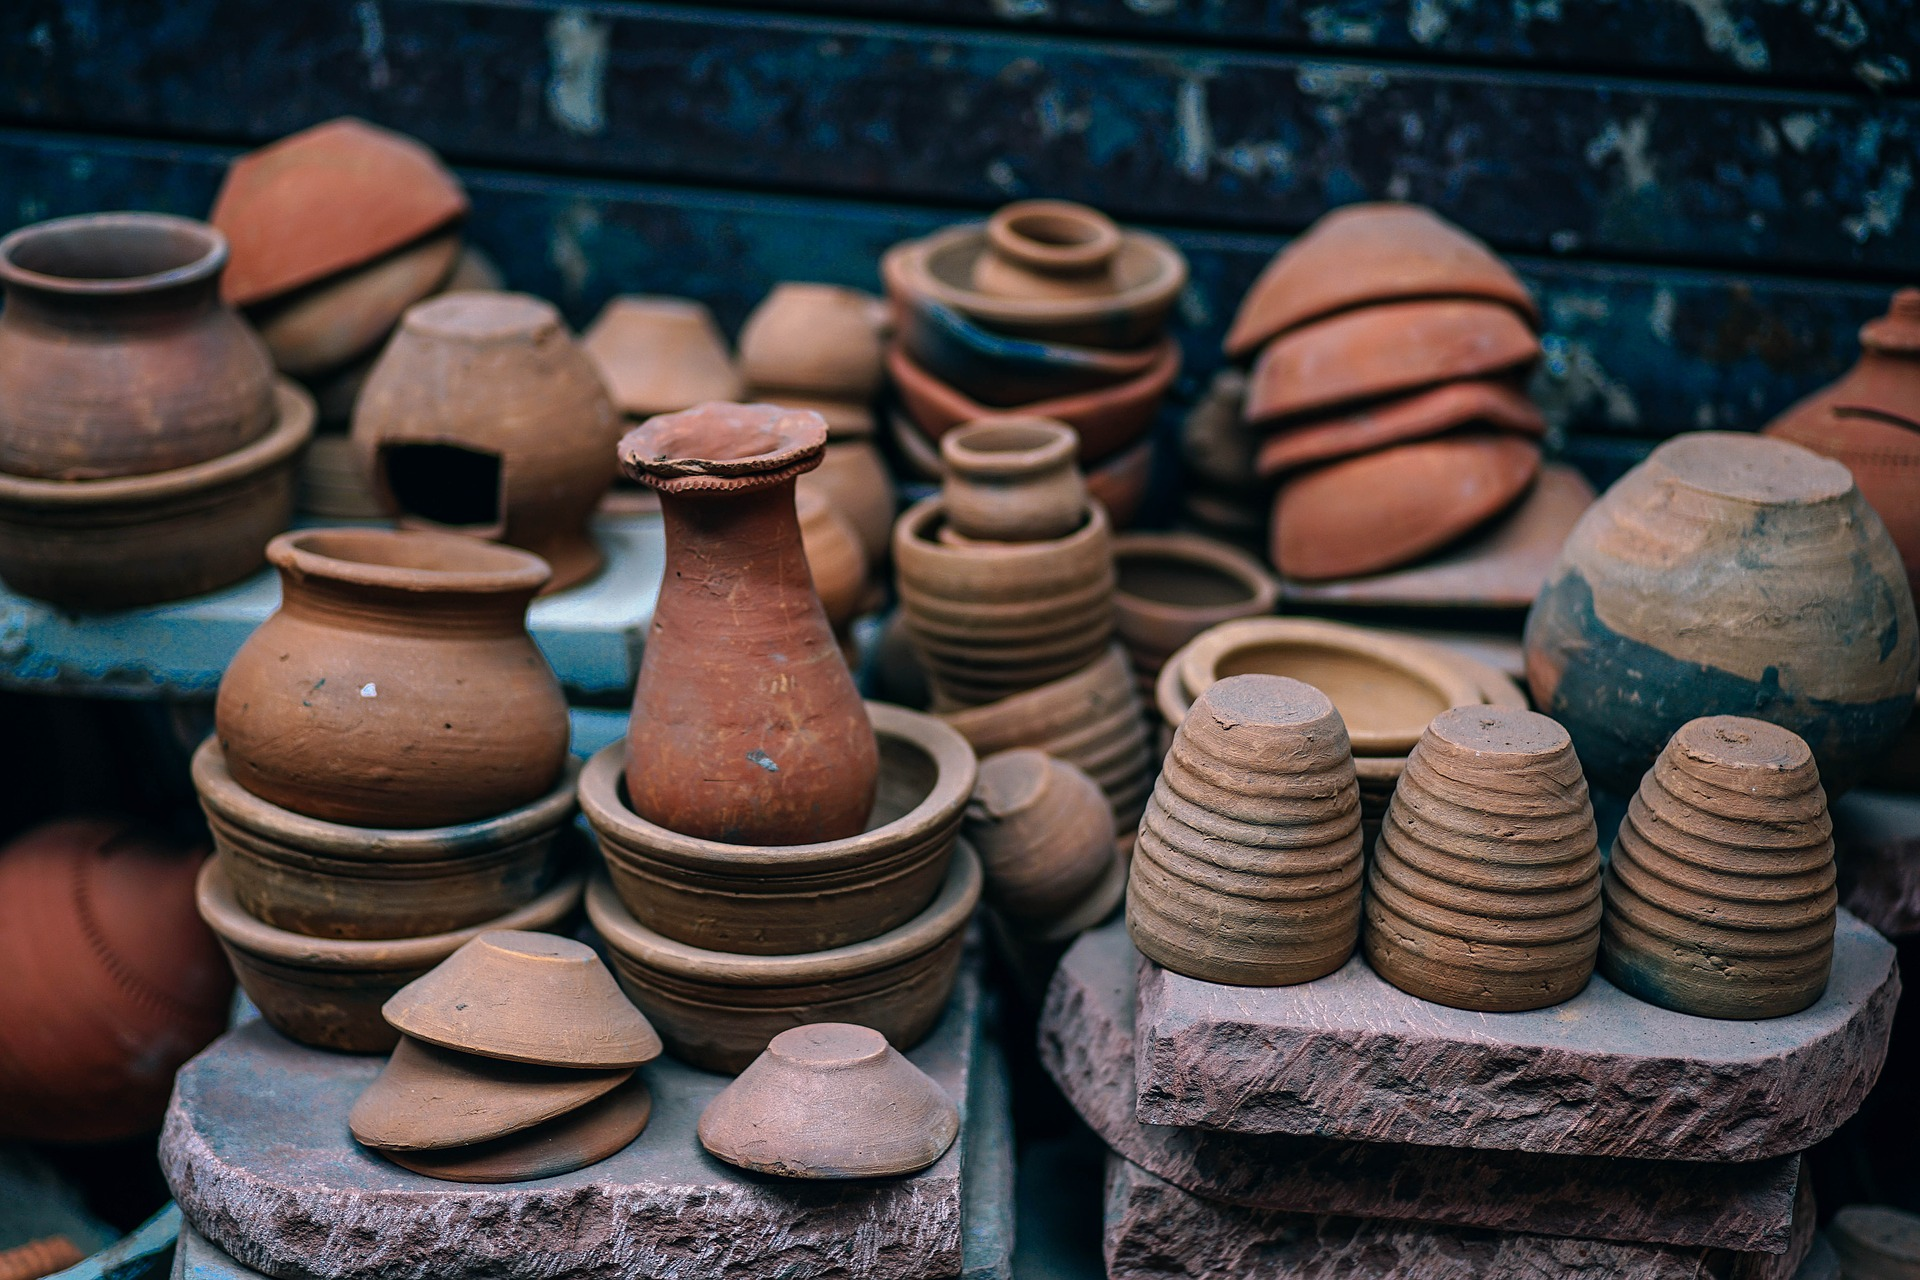 Image of pots